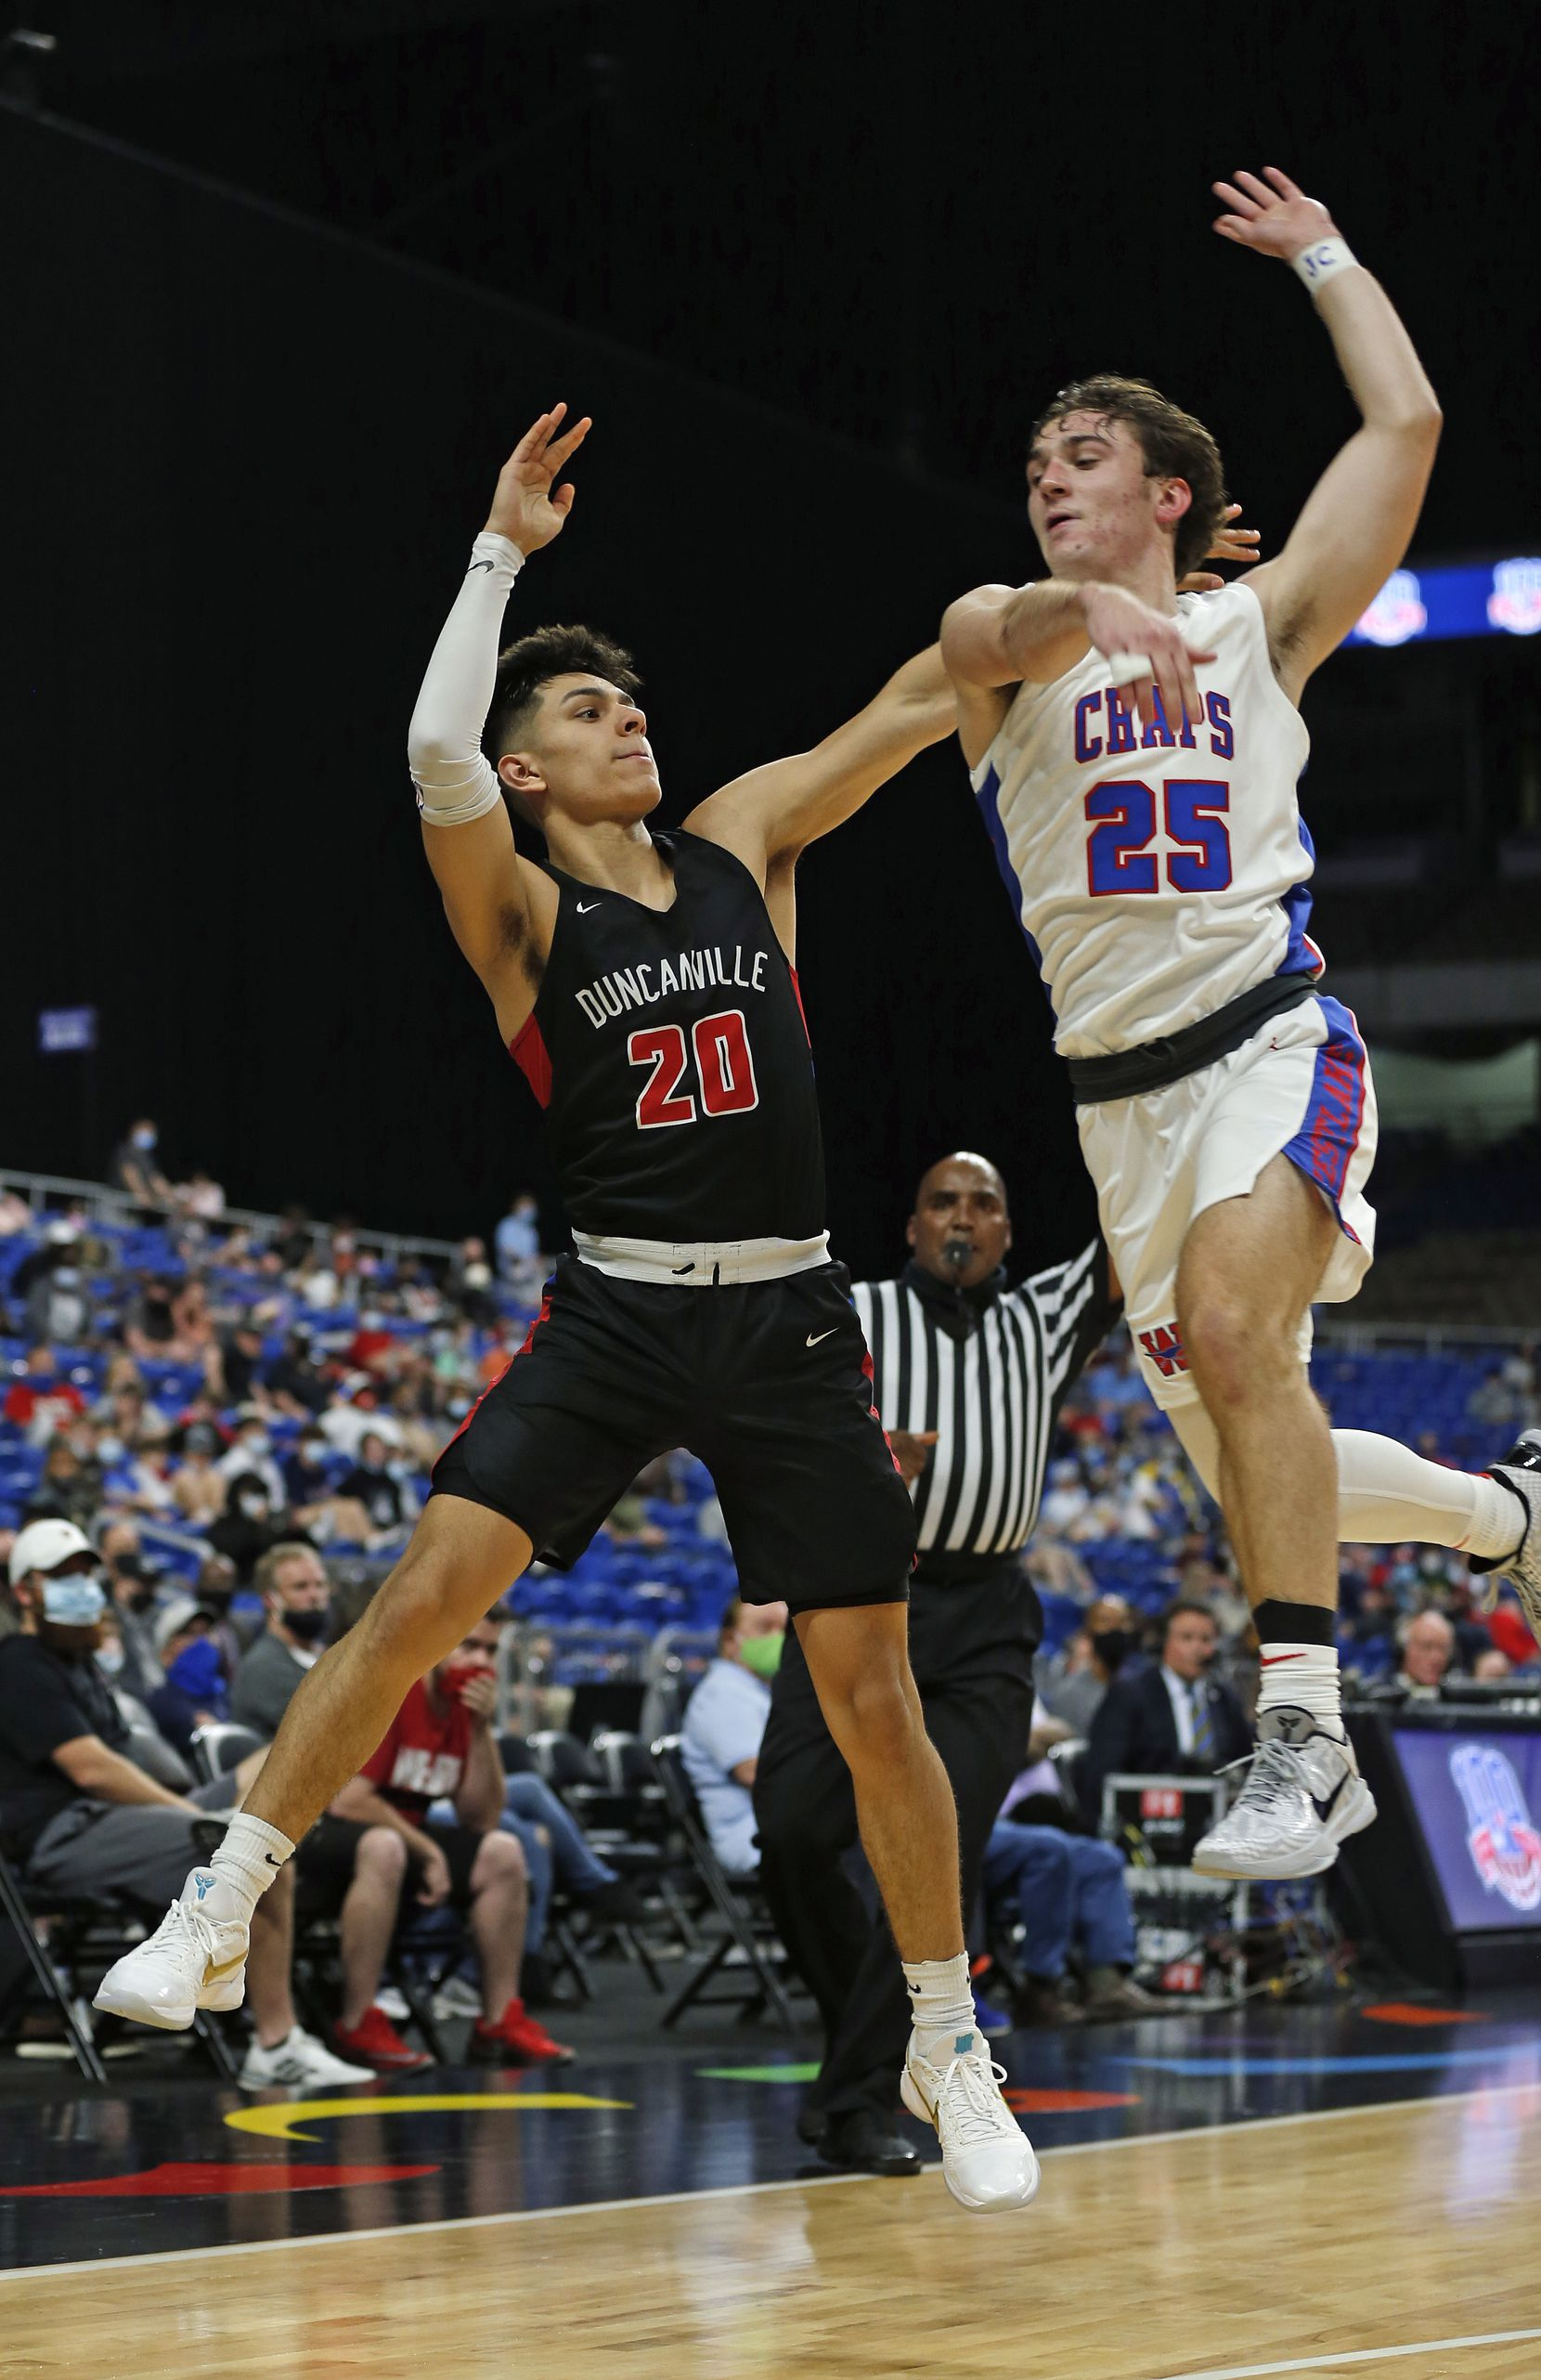 Duncanville Juan Reyna #20 makes a three despite pressure from Westlake Eain Mowat #25. UIL boys Class 6A basketball state championship game between Duncanville and Austin Westlake on Saturday, March 13, 2021 at the Alamodome.